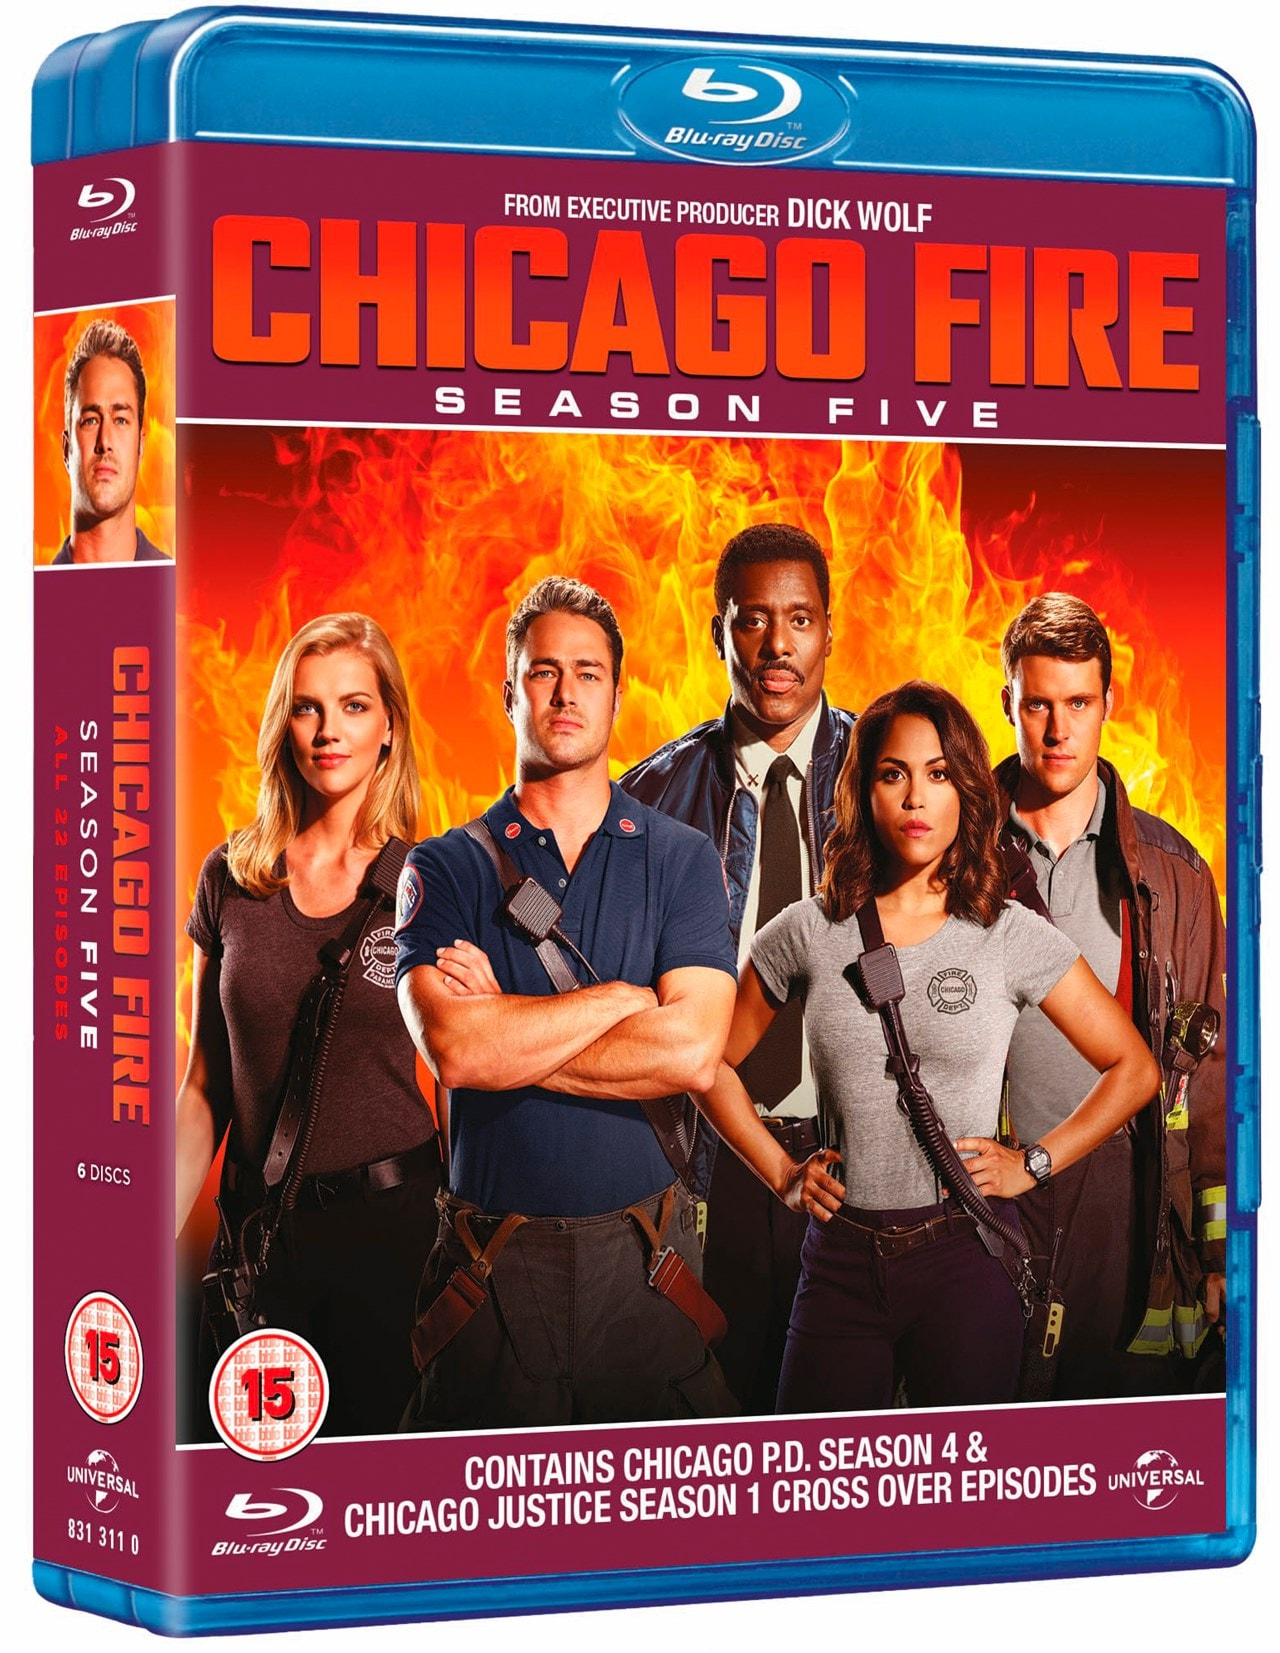 Chicago Fire: Season Five - 2